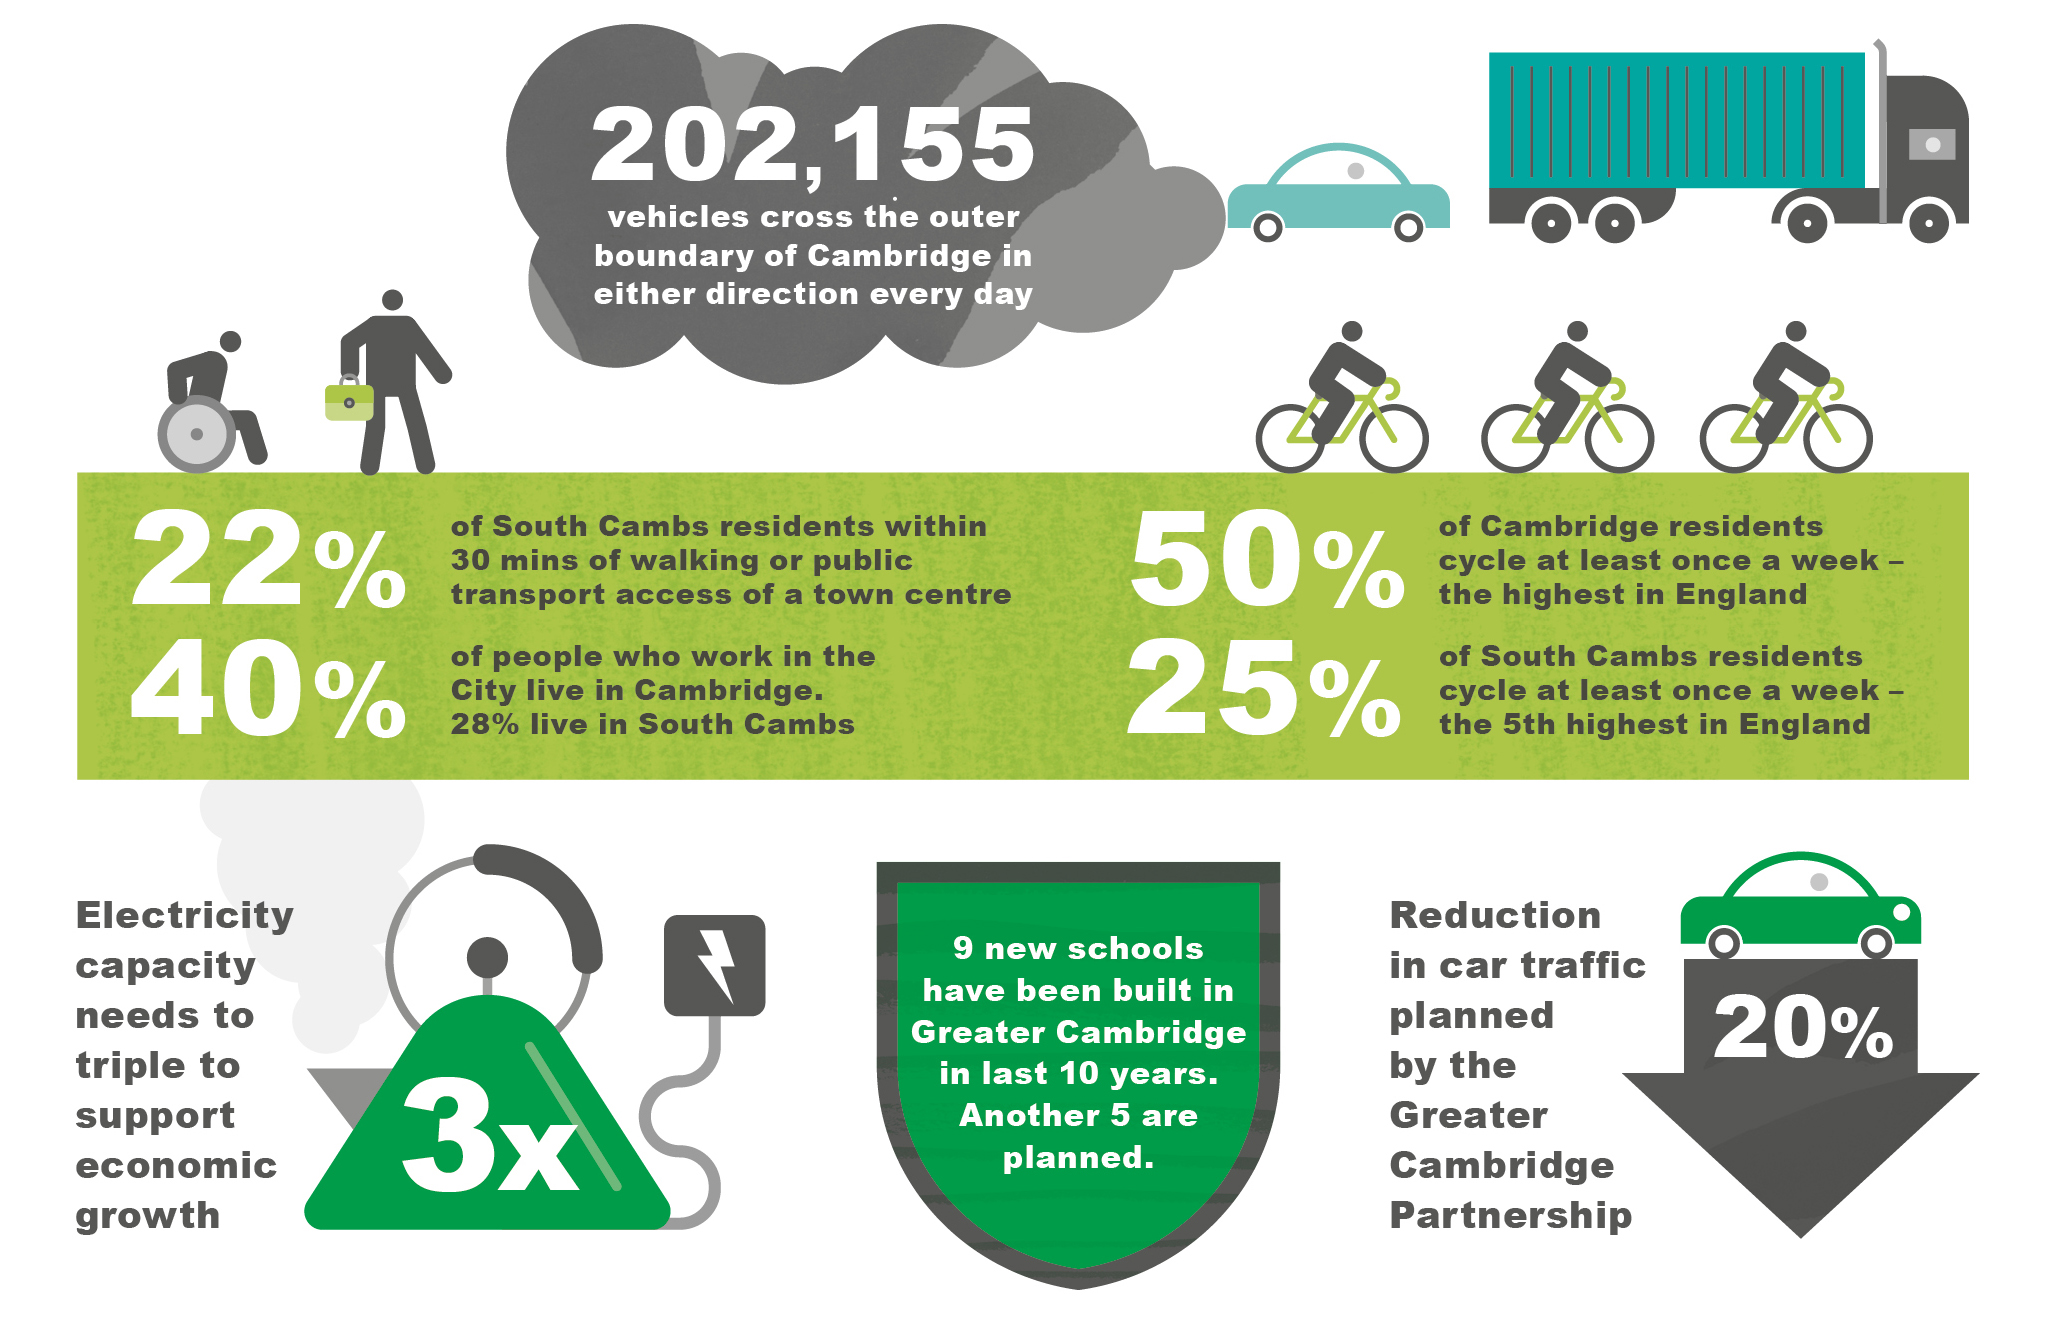 Infographic showing that 202,155 vehicles cross the outer boundary of Cambridge in either direction every day; there have been 9 new schools built in Greater Cambridge in the last 10 years and 5 new schools are currently planned;  electricity grid capacity needs to triple to support economic growth; a 20% reduction in car traffic in Cambridge is planned by the Greater Cambridge Partnership; 22% of South Cambs residents live within 30 mins of walking or public transport access to a town centre; 40% of people who work in the City live in Cambridge, 28% live in South Cambs; 50% of Cambridge residents cycle at least once a week - the highest in england; 25% of South Cambs residents cycle at least once a week - the 5th highest in England.